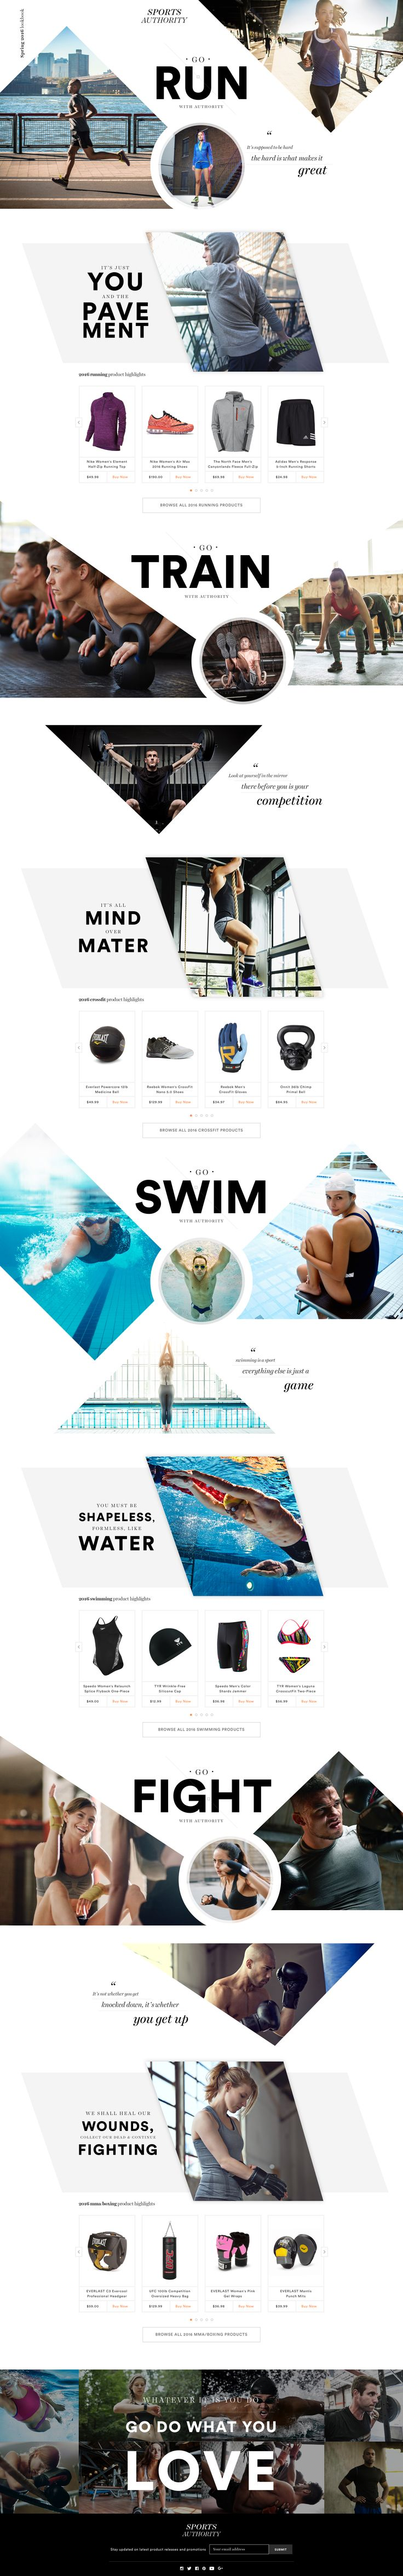 Web design | Sports authority lookbook2016 jason kirtley 1x | creative | inspiration | web